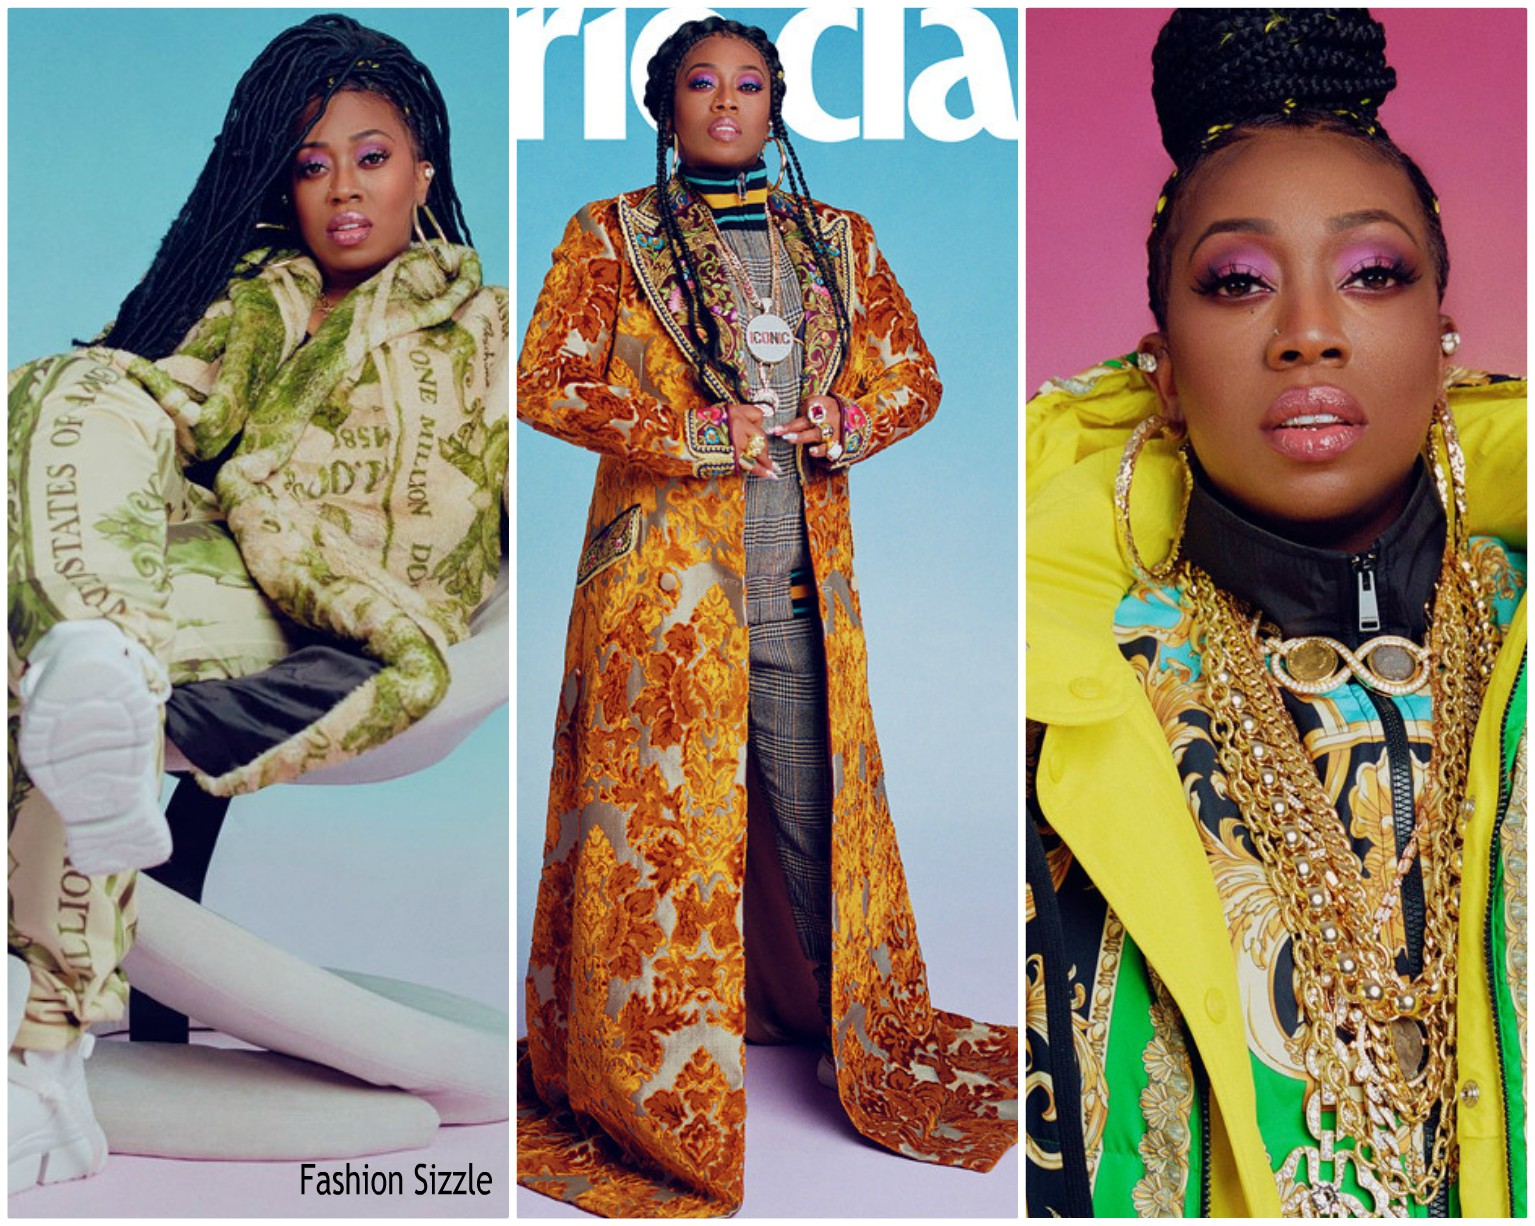 missy-elliot-covers-marie-claire-august-2019-images-shot-by-miaiah-carter